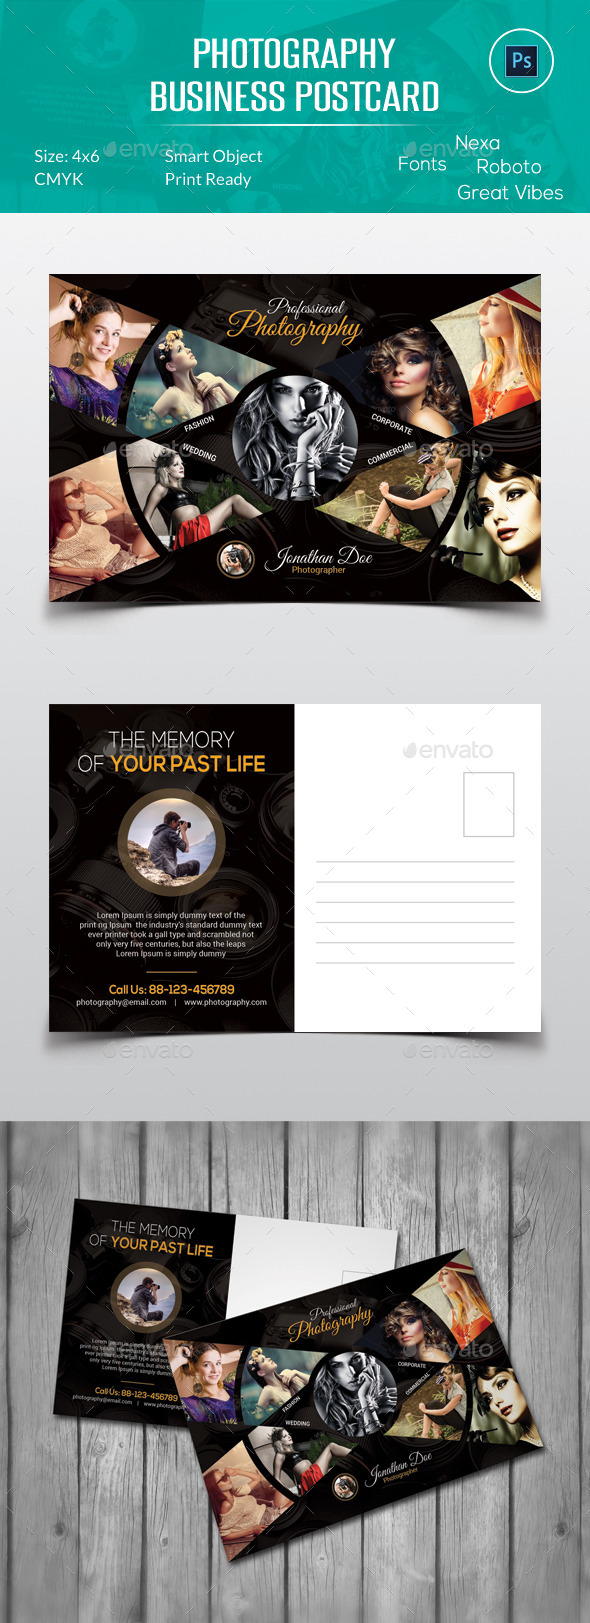 Photography Postcard - Cards & Invites Print Templates